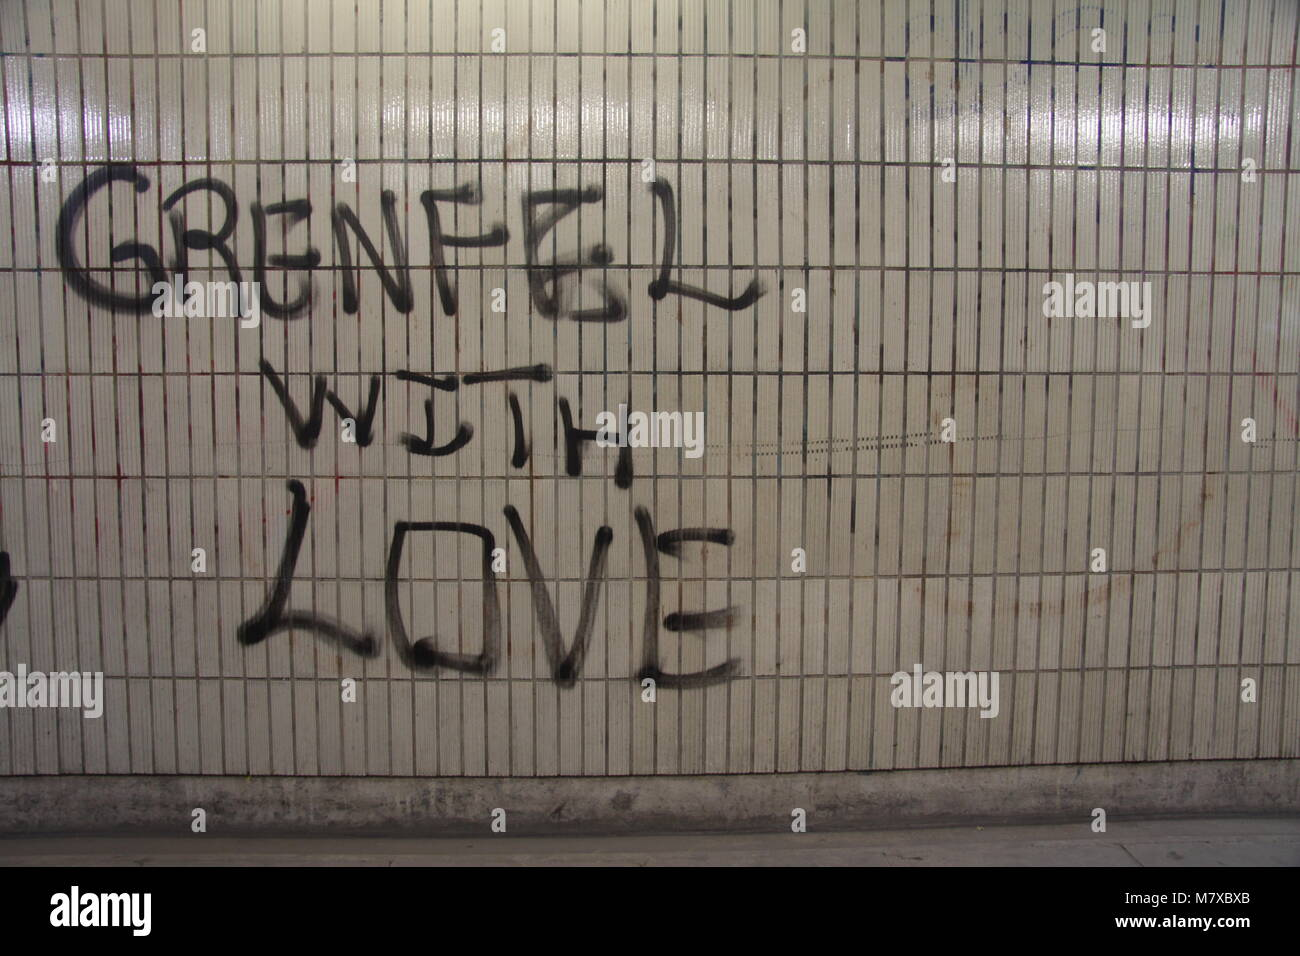 Grenfell Tower Tribute Graffiti - Stock Image